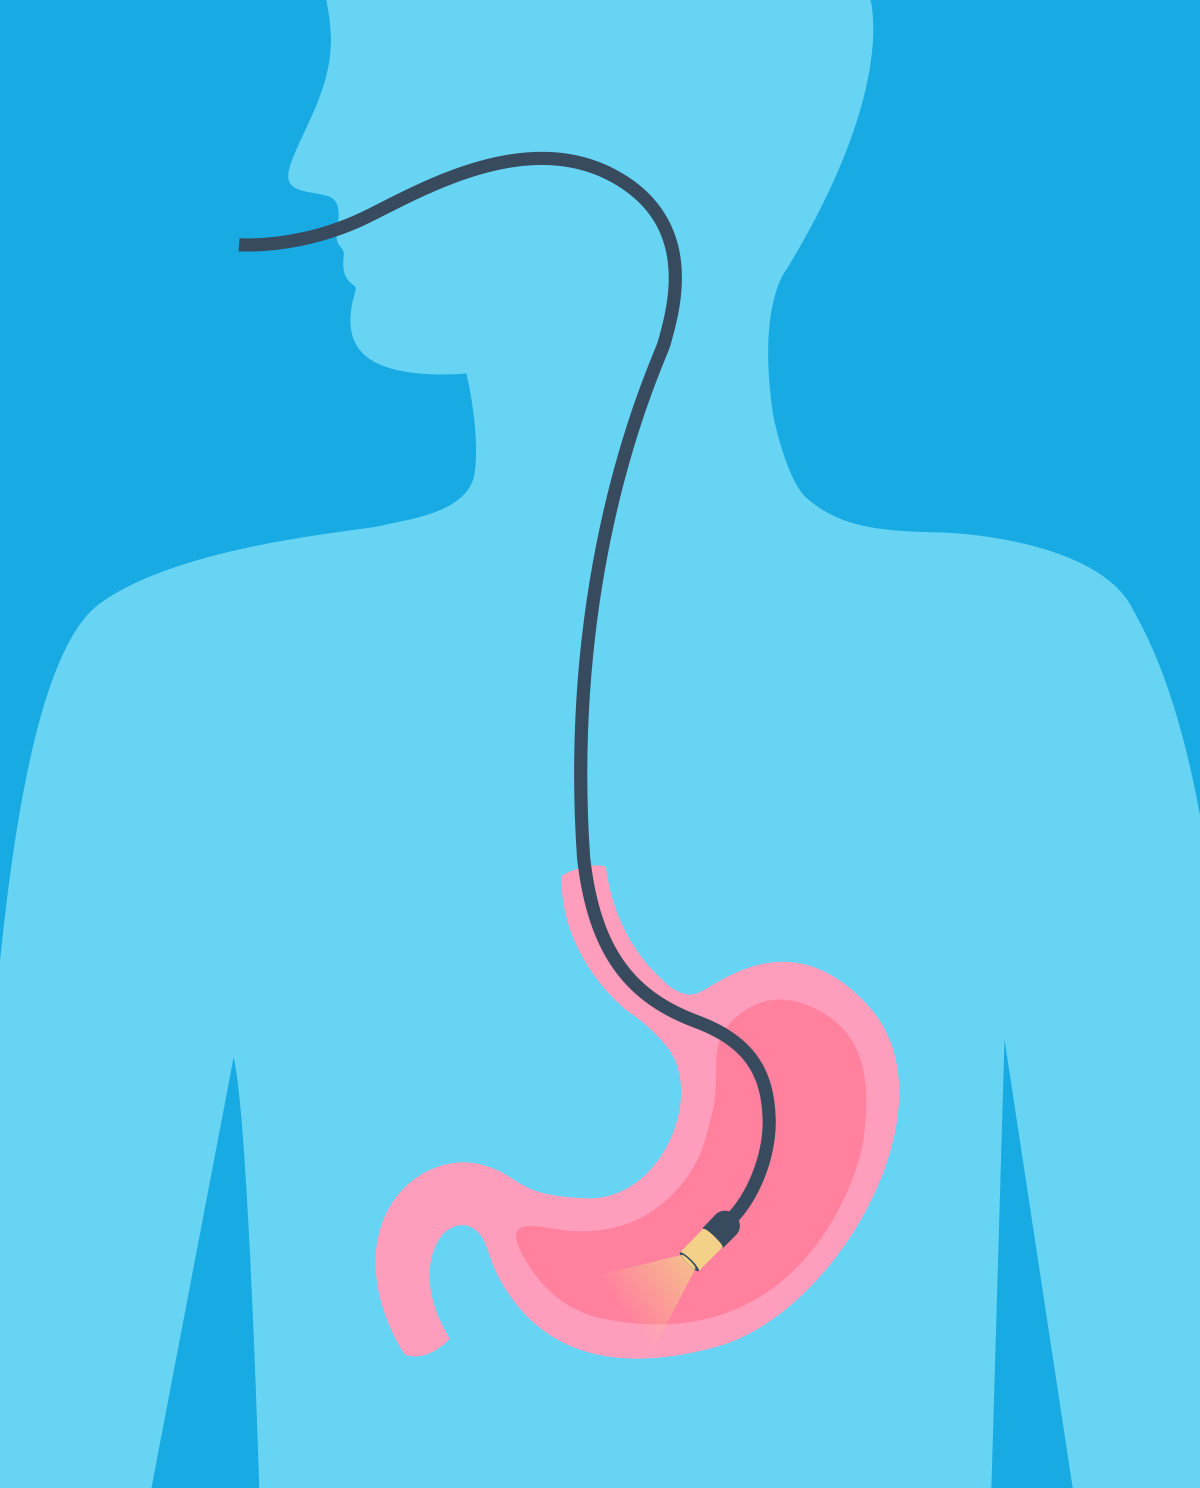 Gastroscopy - what is it and how can you prepare for it?